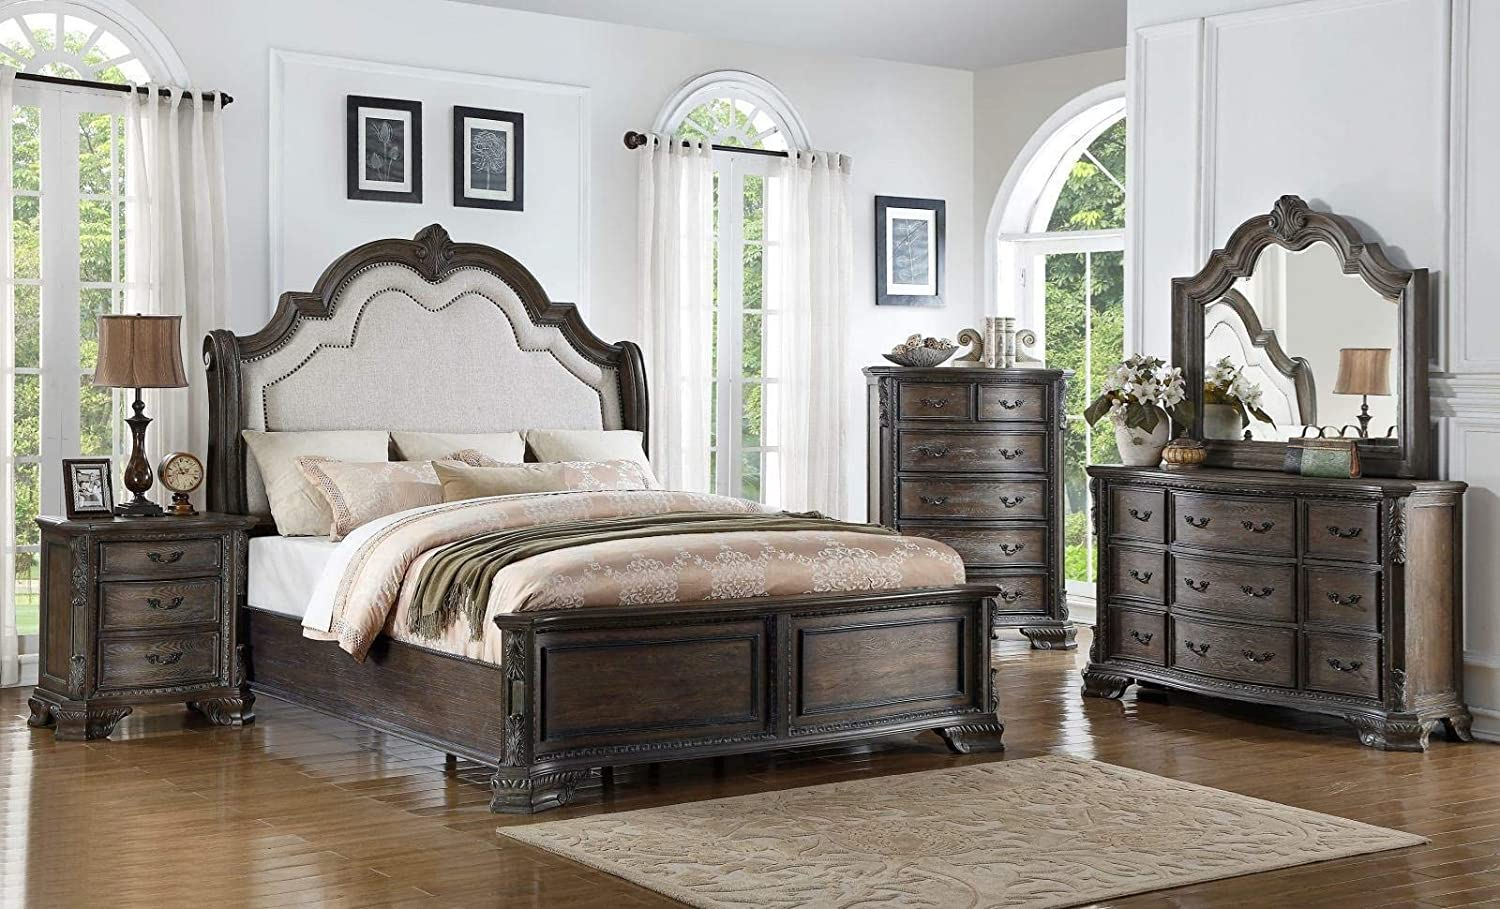 Traditional Design Uphlostered Headboard King Fashionable Dress Bed Size 6pc Max 41% OFF